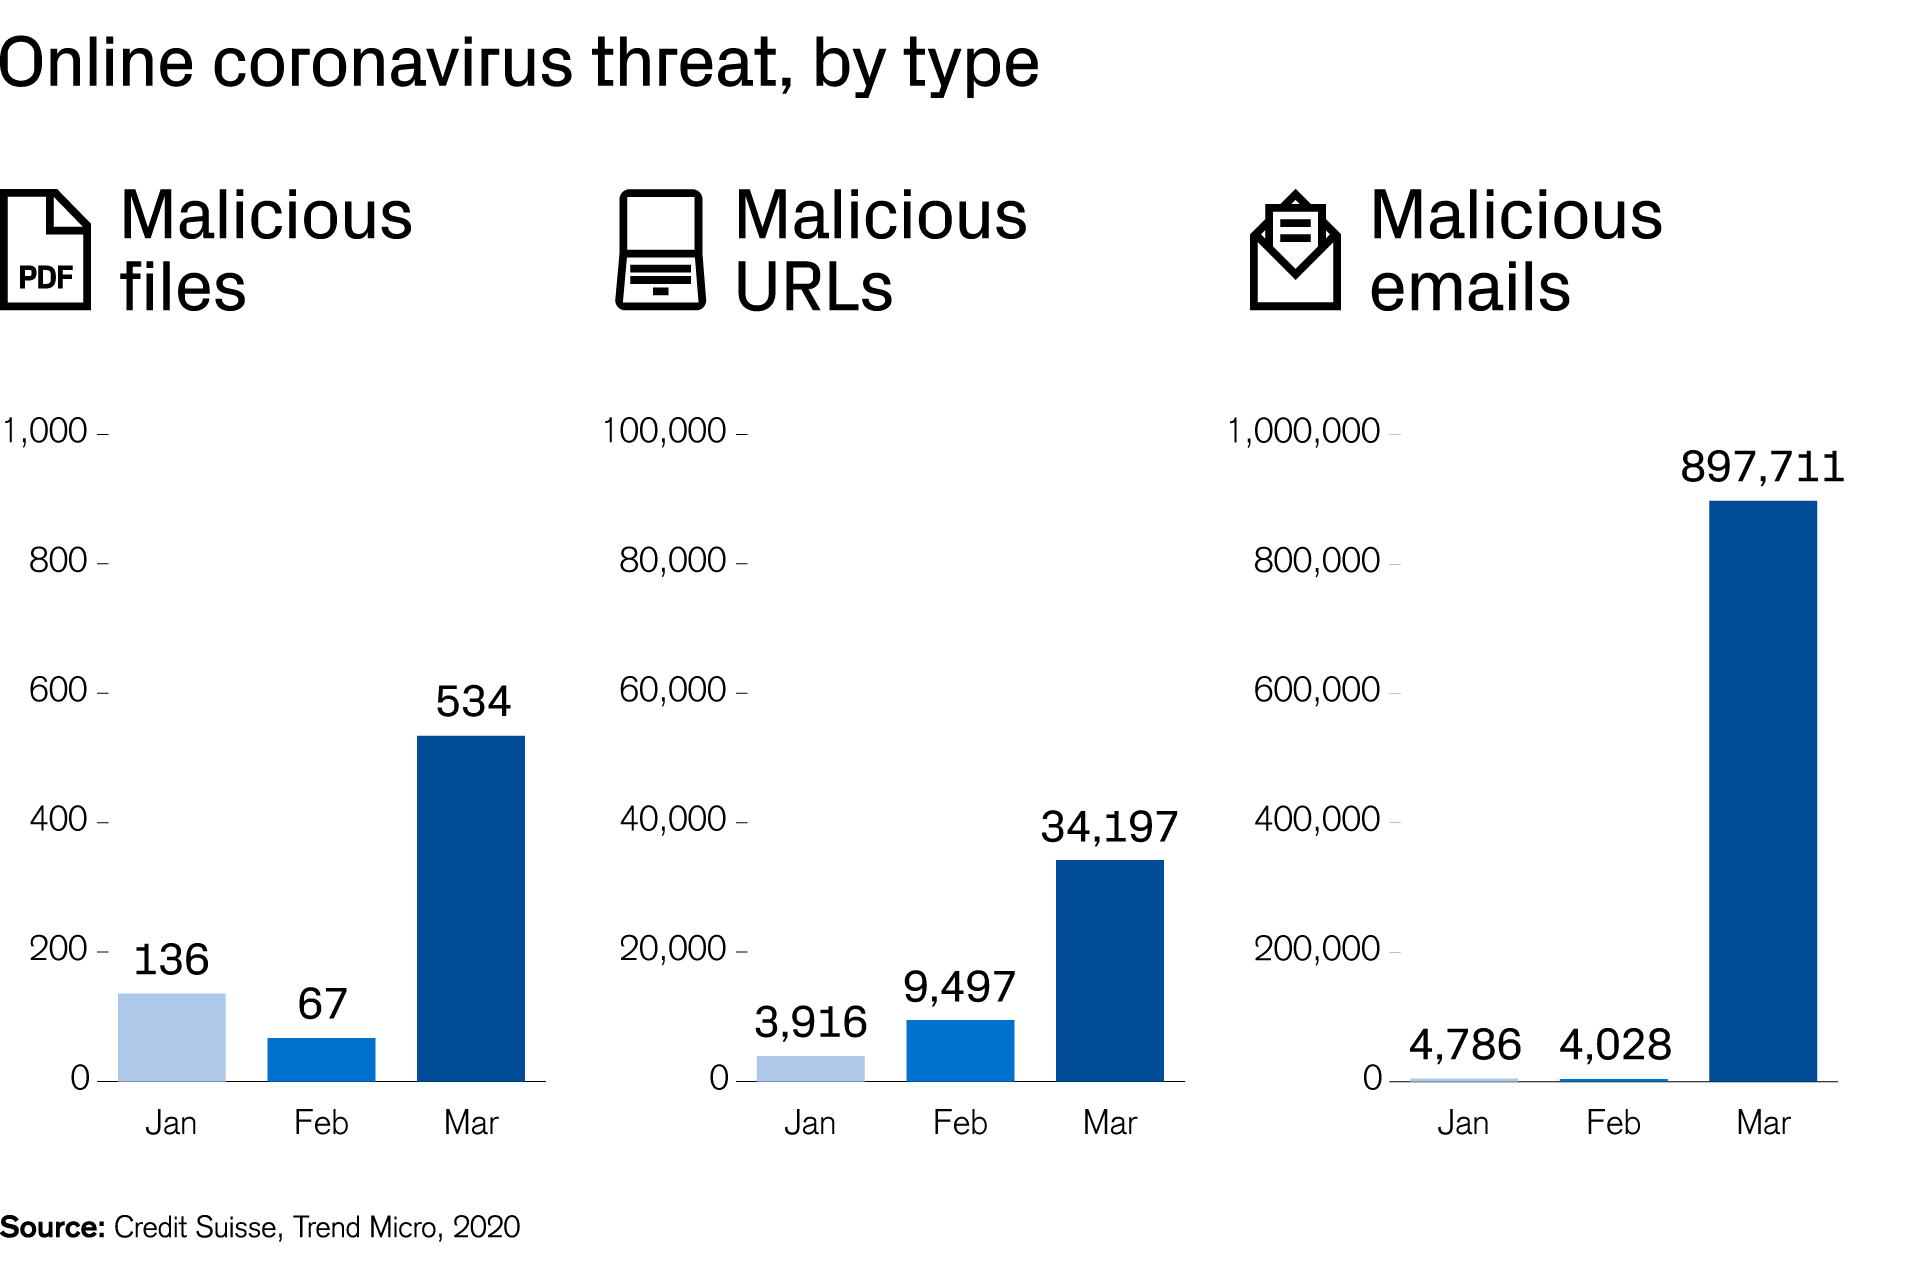 Online coronavirus threat, by type